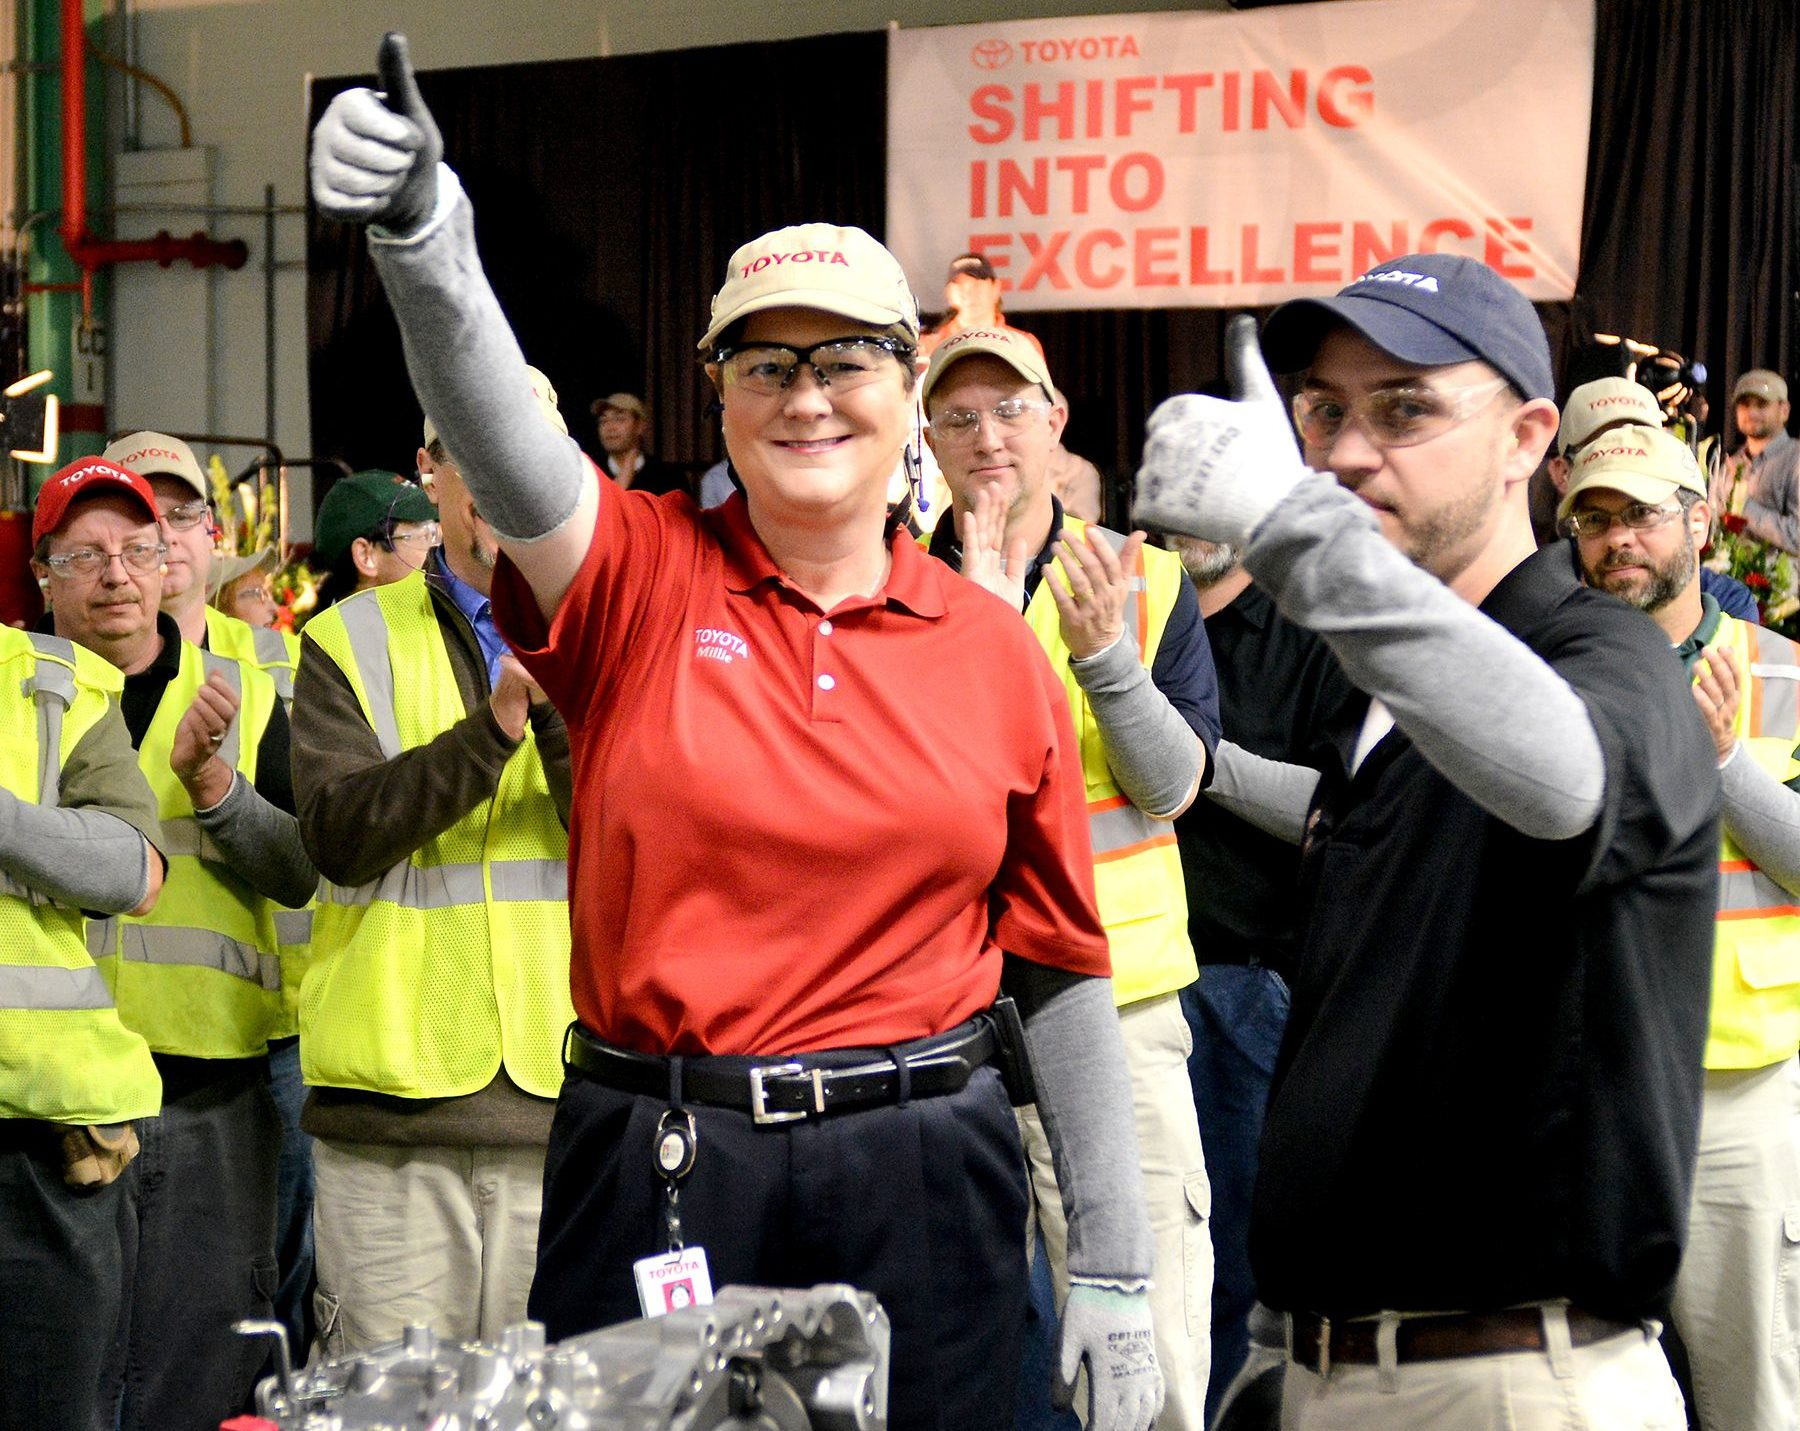 Toyota's Millie Marshall Exemplifies Female Leadership in Manufacturing